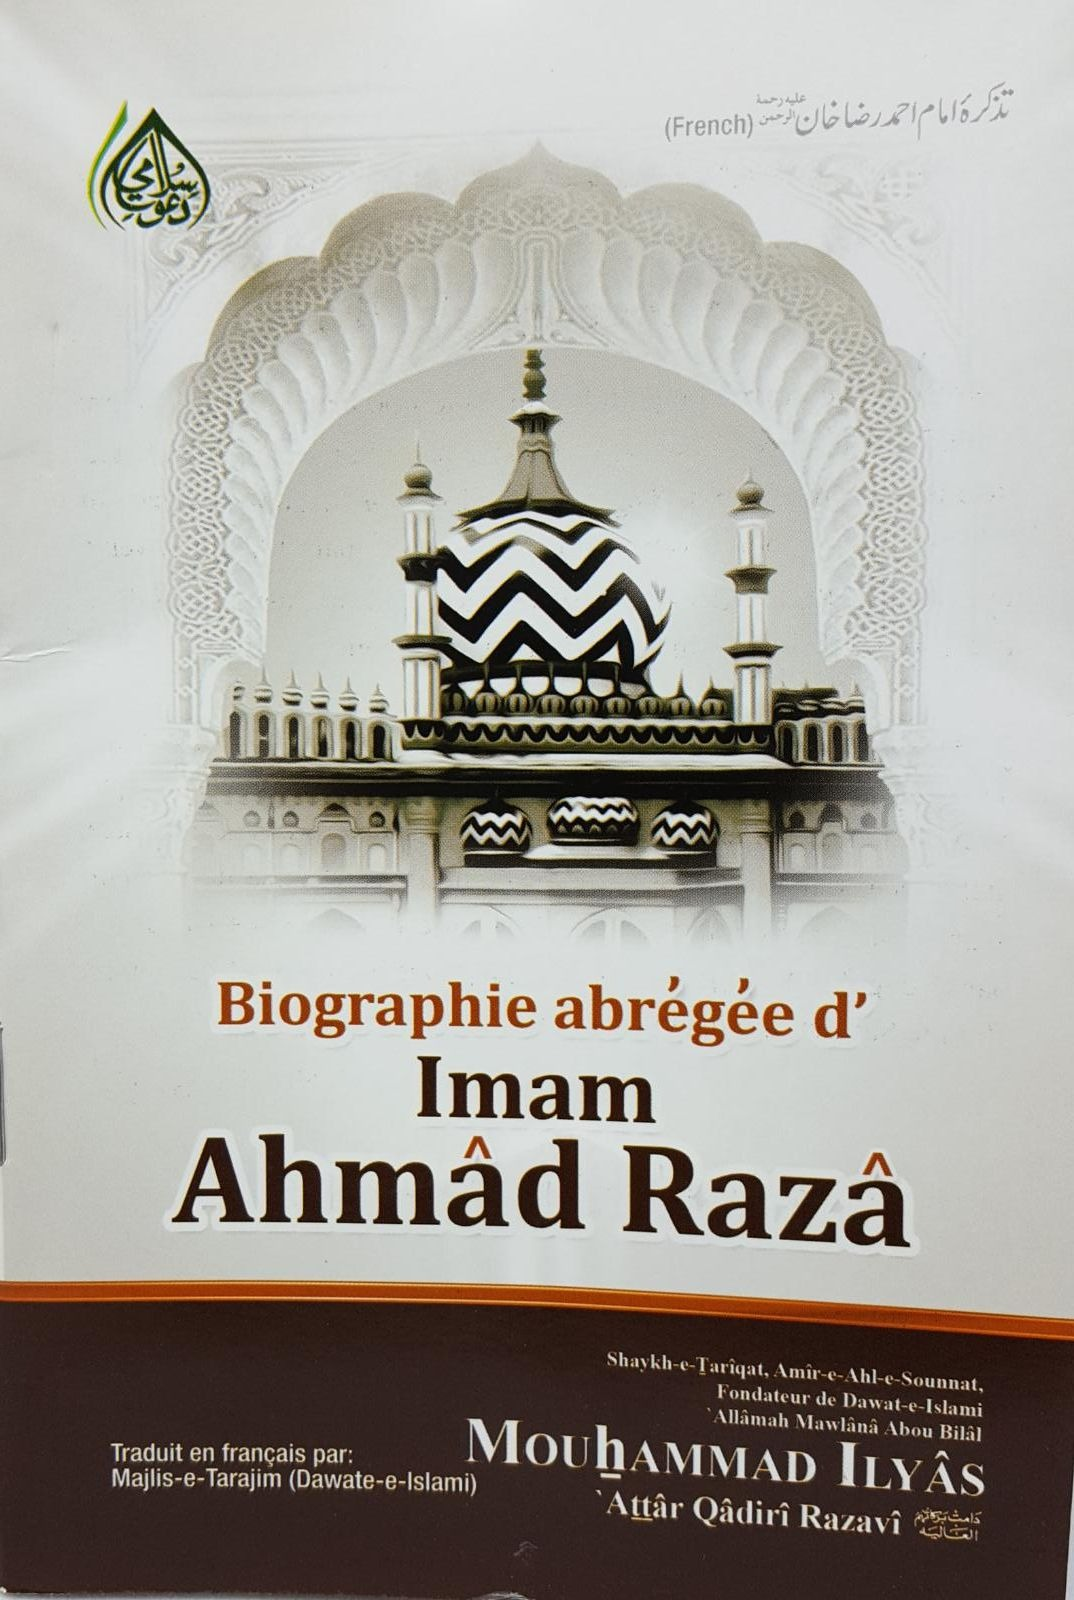 Tazkirah Imam Ahmed Raza Khan (French)